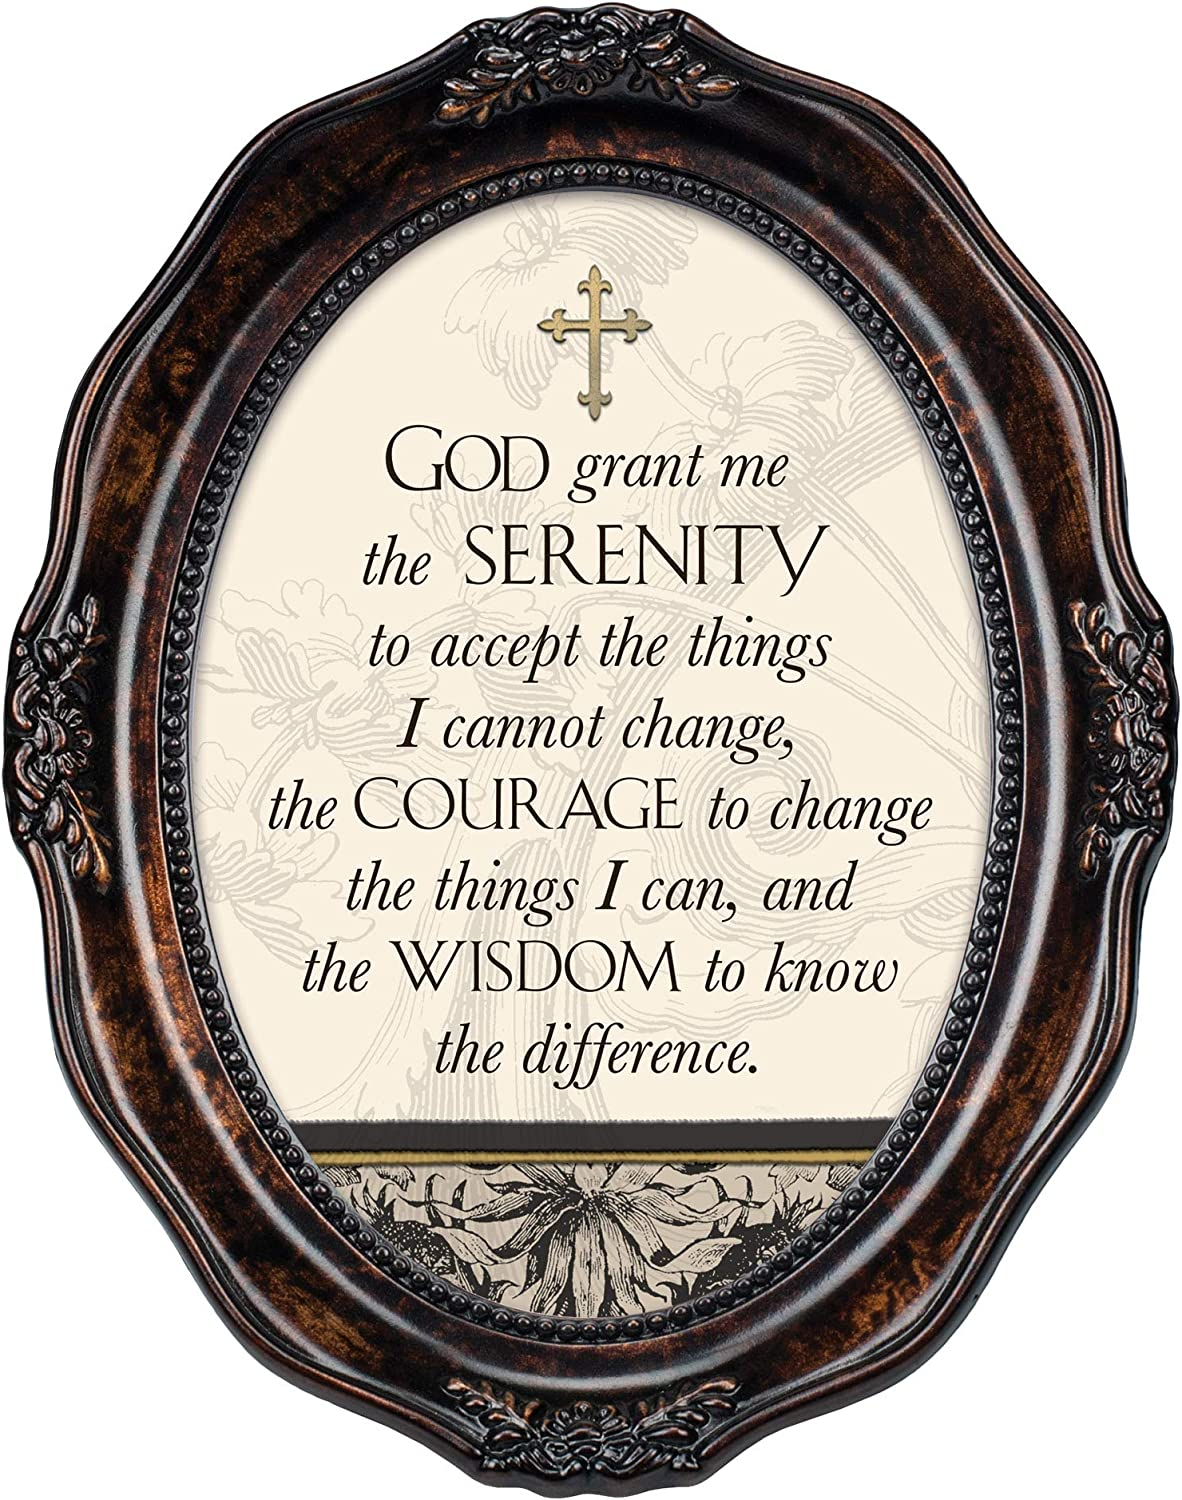 Cottage Garden God Grant Me The Serenity Burlwood Finish Wavy 5 x 7 Oval Table and Wall Photo Frame